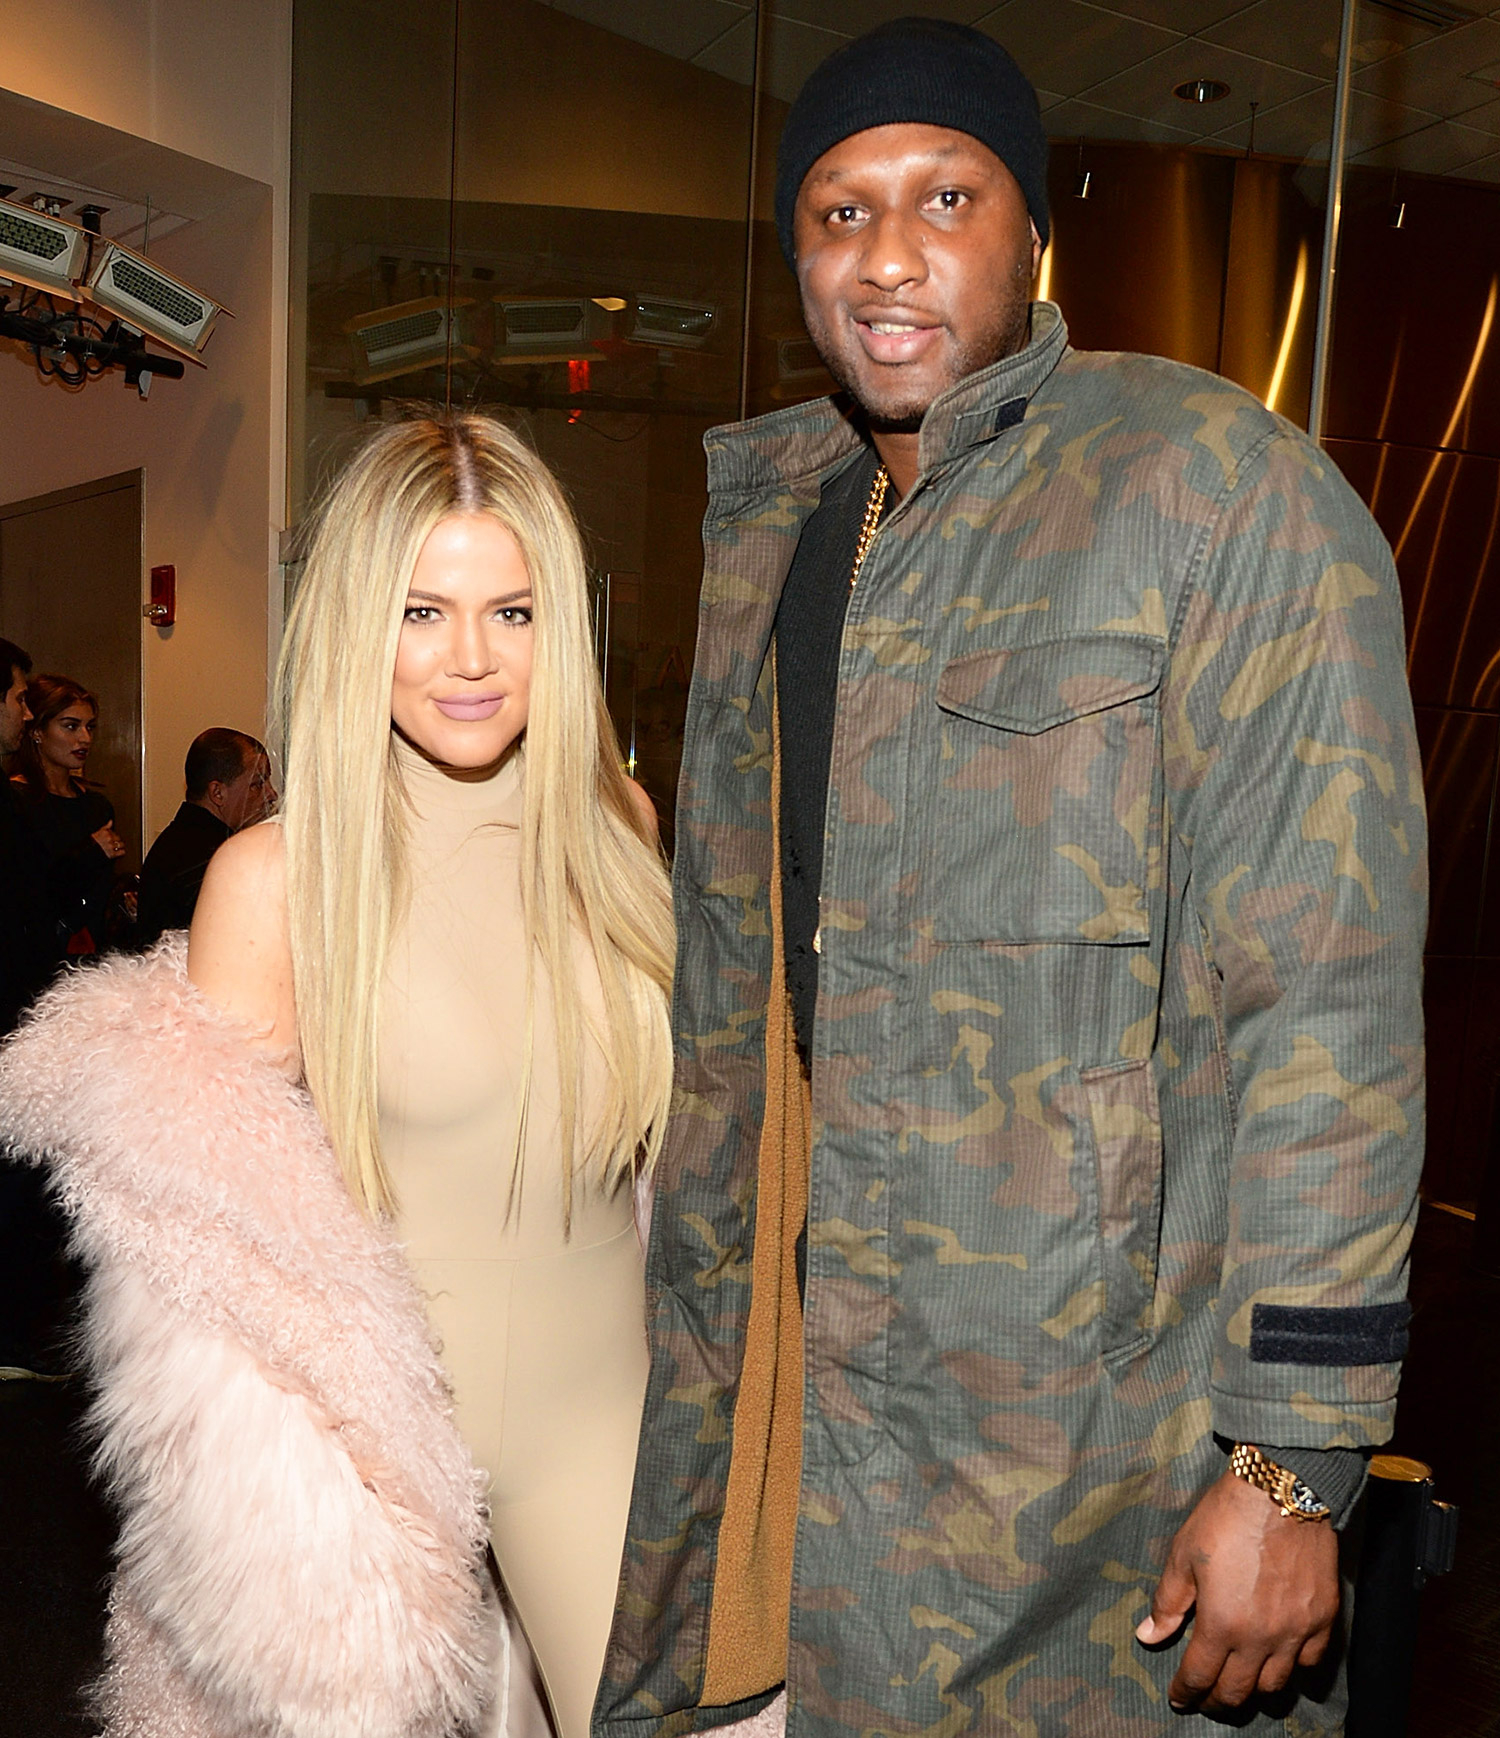 Khloe Kardashian and Lamar Odom attend Kanye West Yeezy Season 3 at Madison Square Garden on February 11, 2016.